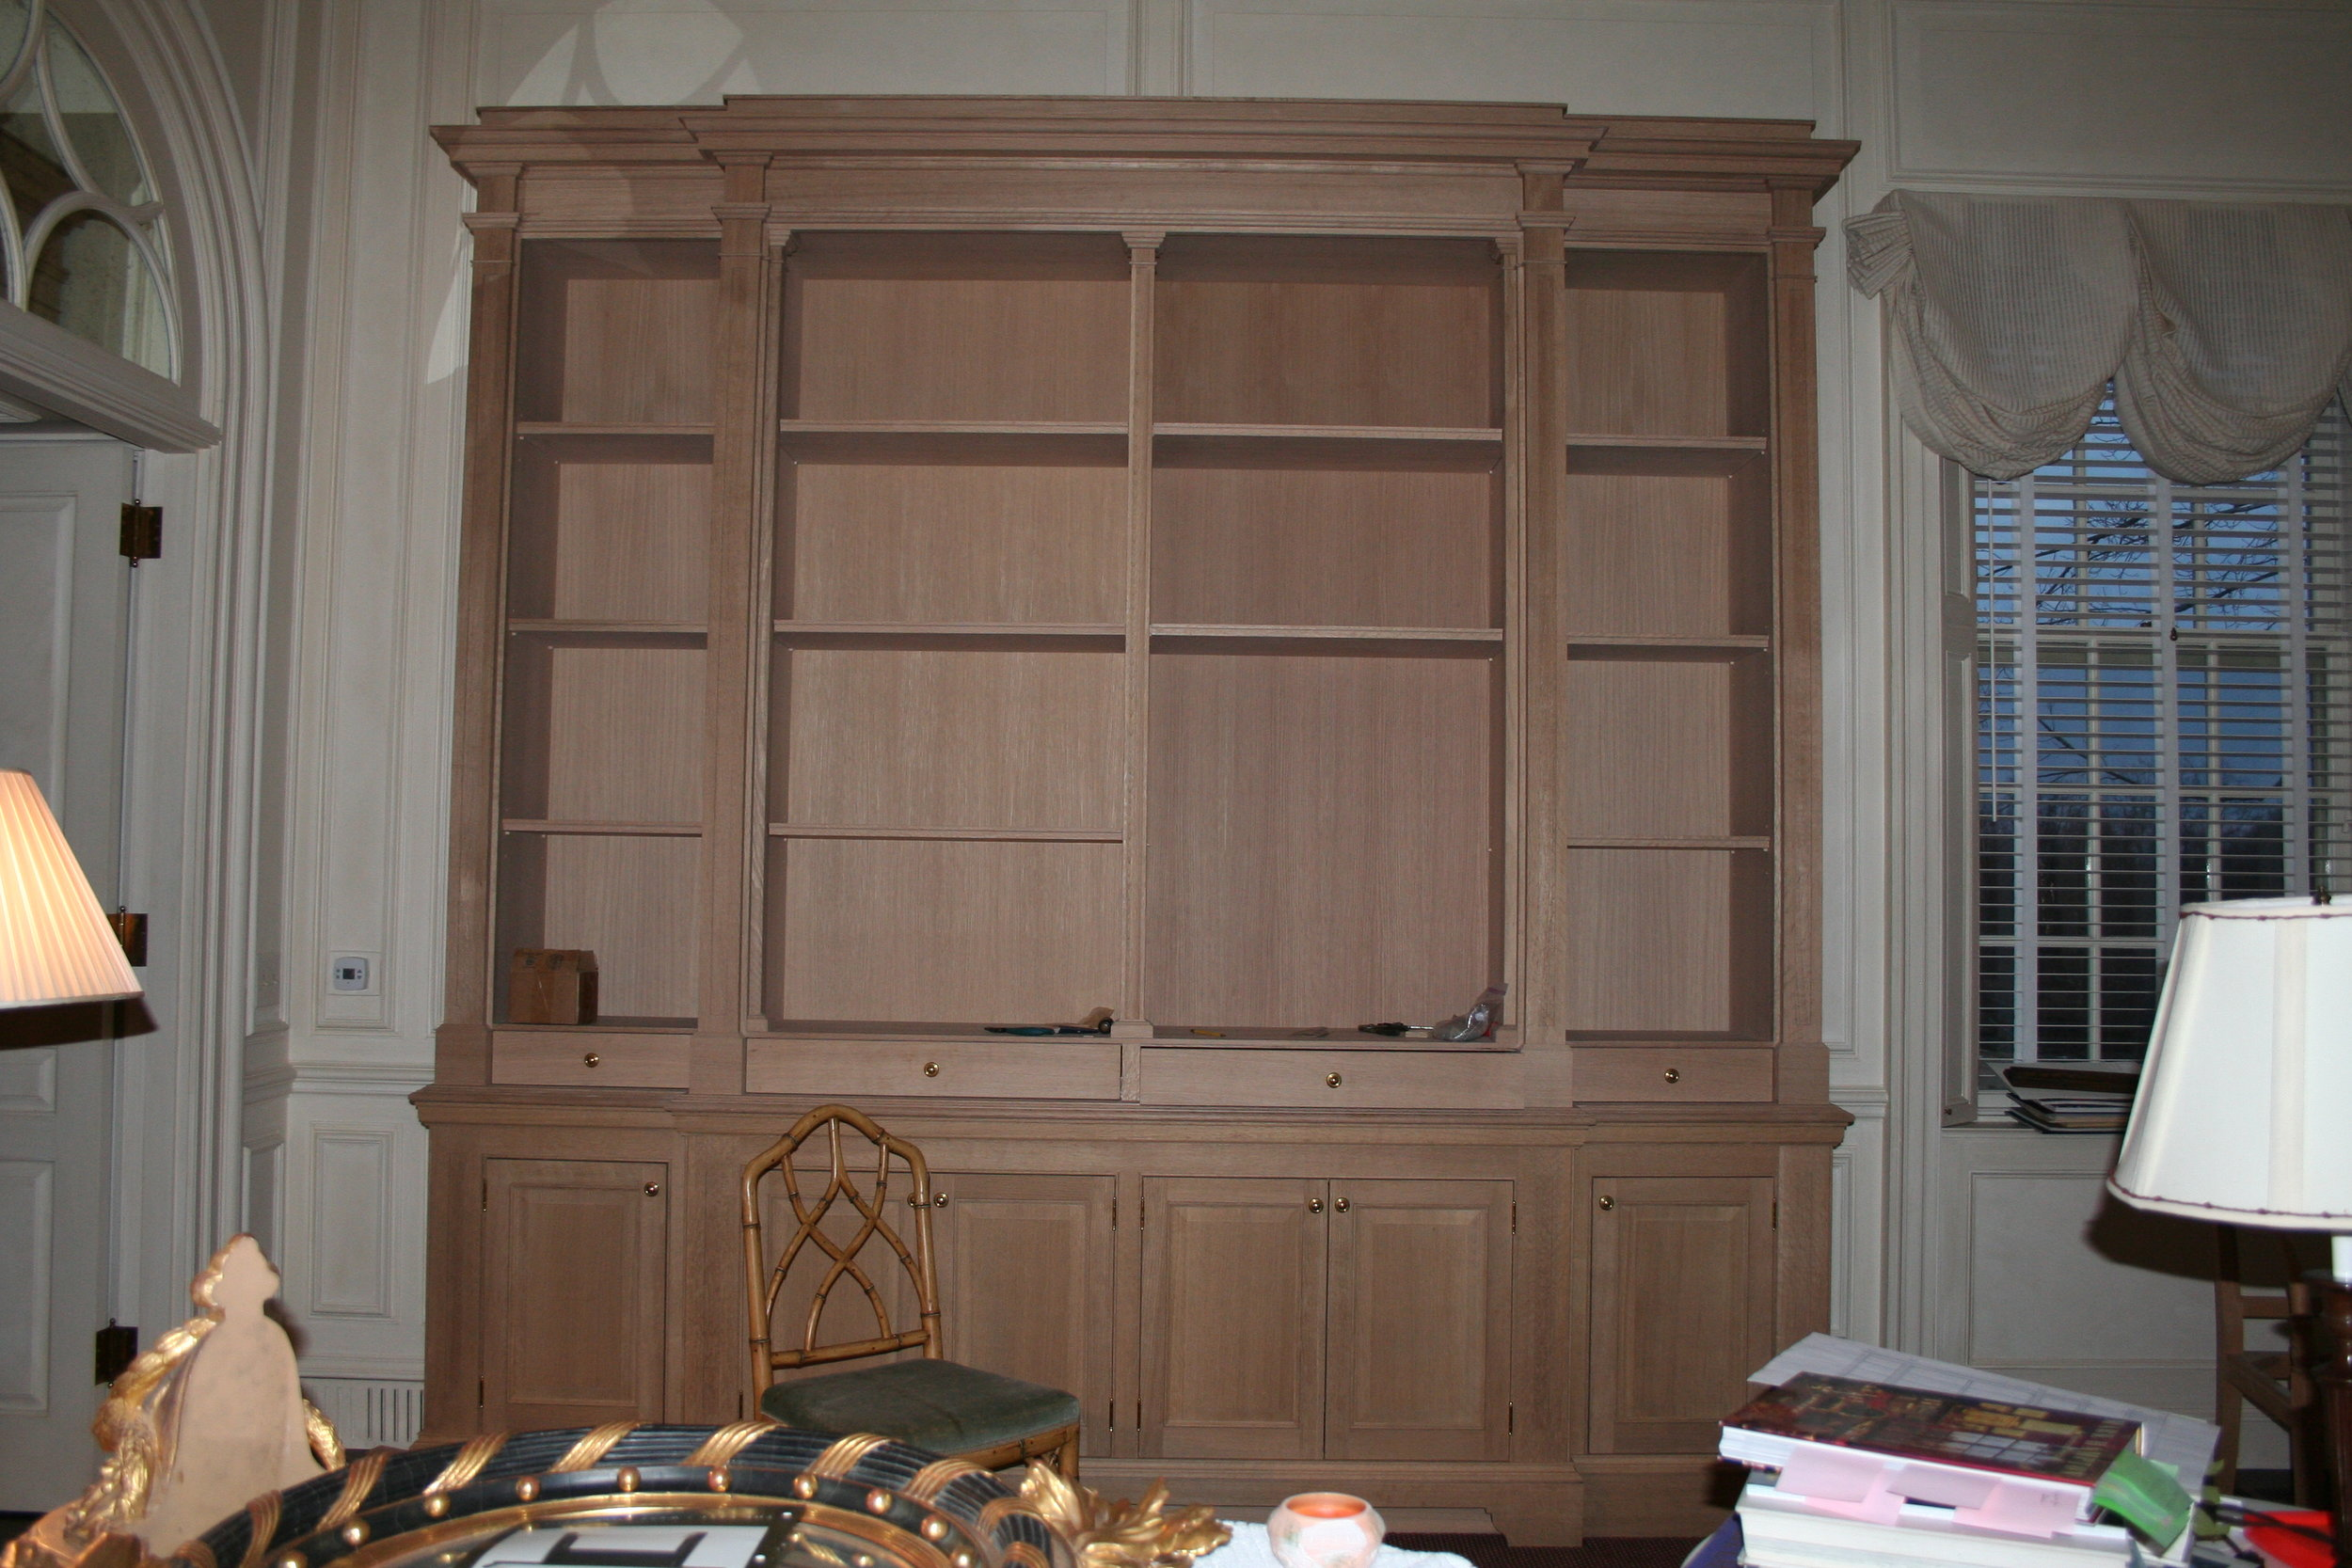 pearsall, crabe, bookcase 003.JPG